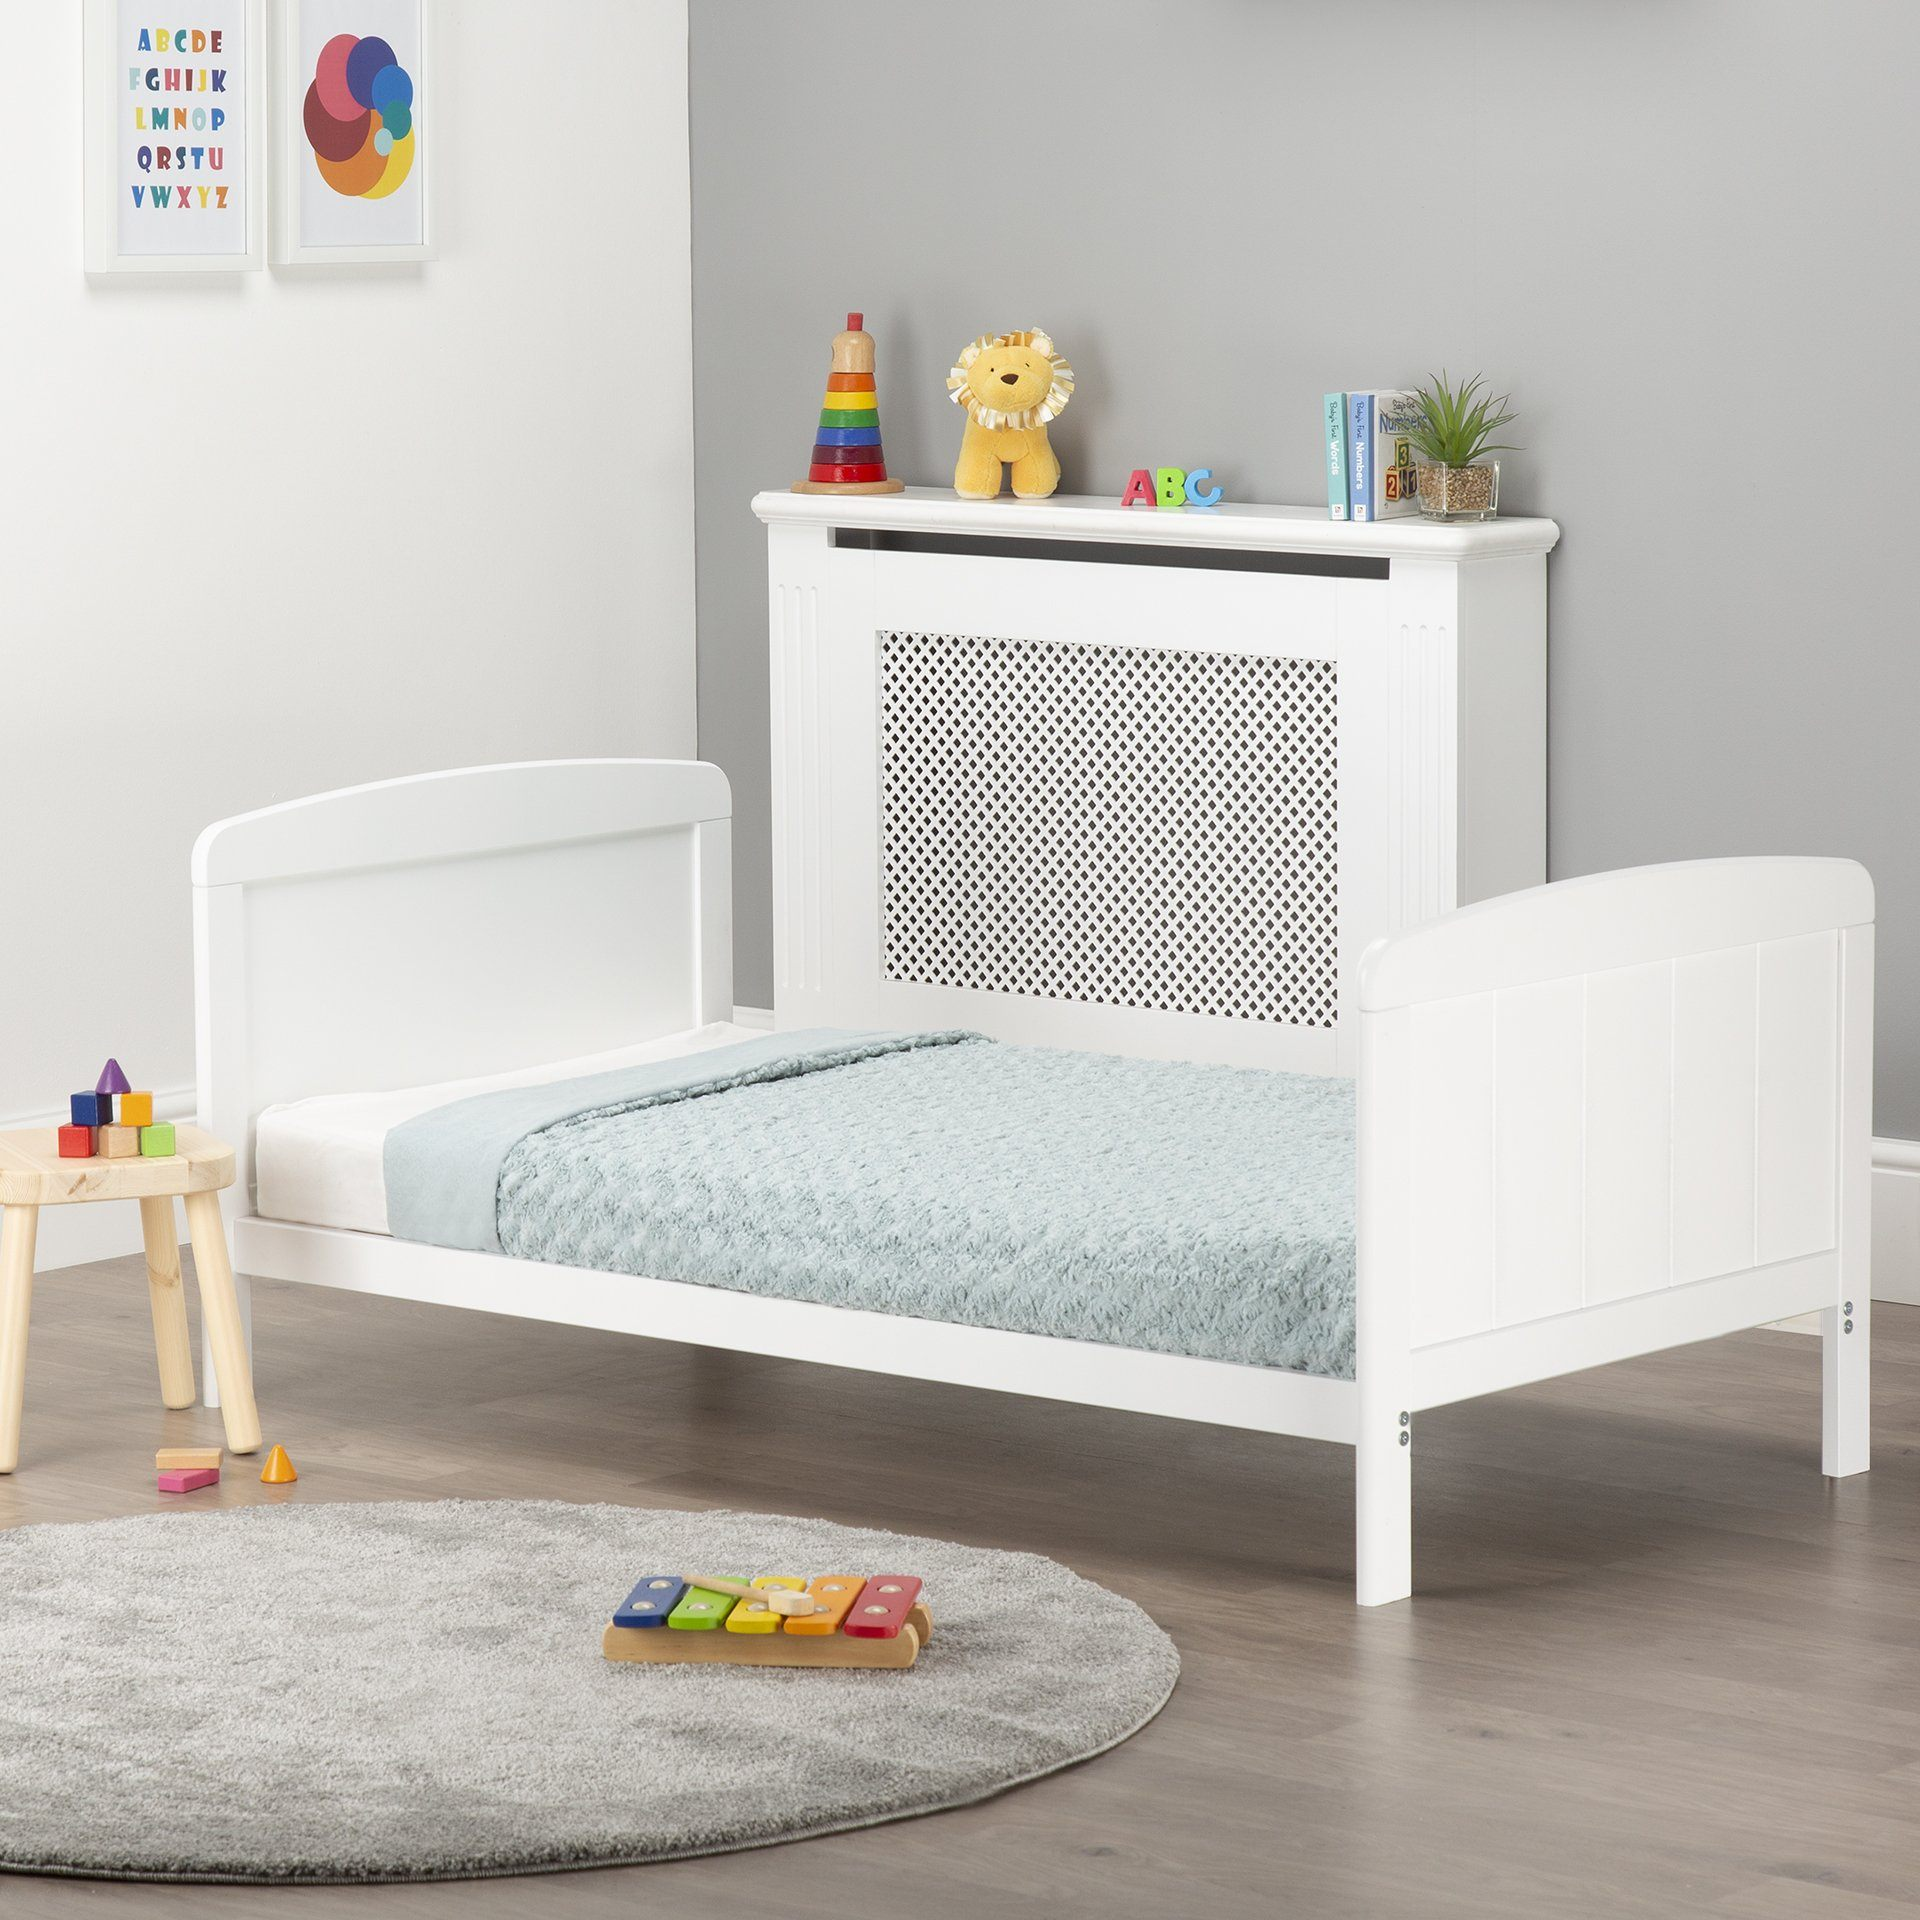 Juliet Cot Bed White + Mother&Baby White Gold Anti-Allergy Pocket Sprung Cot bed Mattress CuddleCo